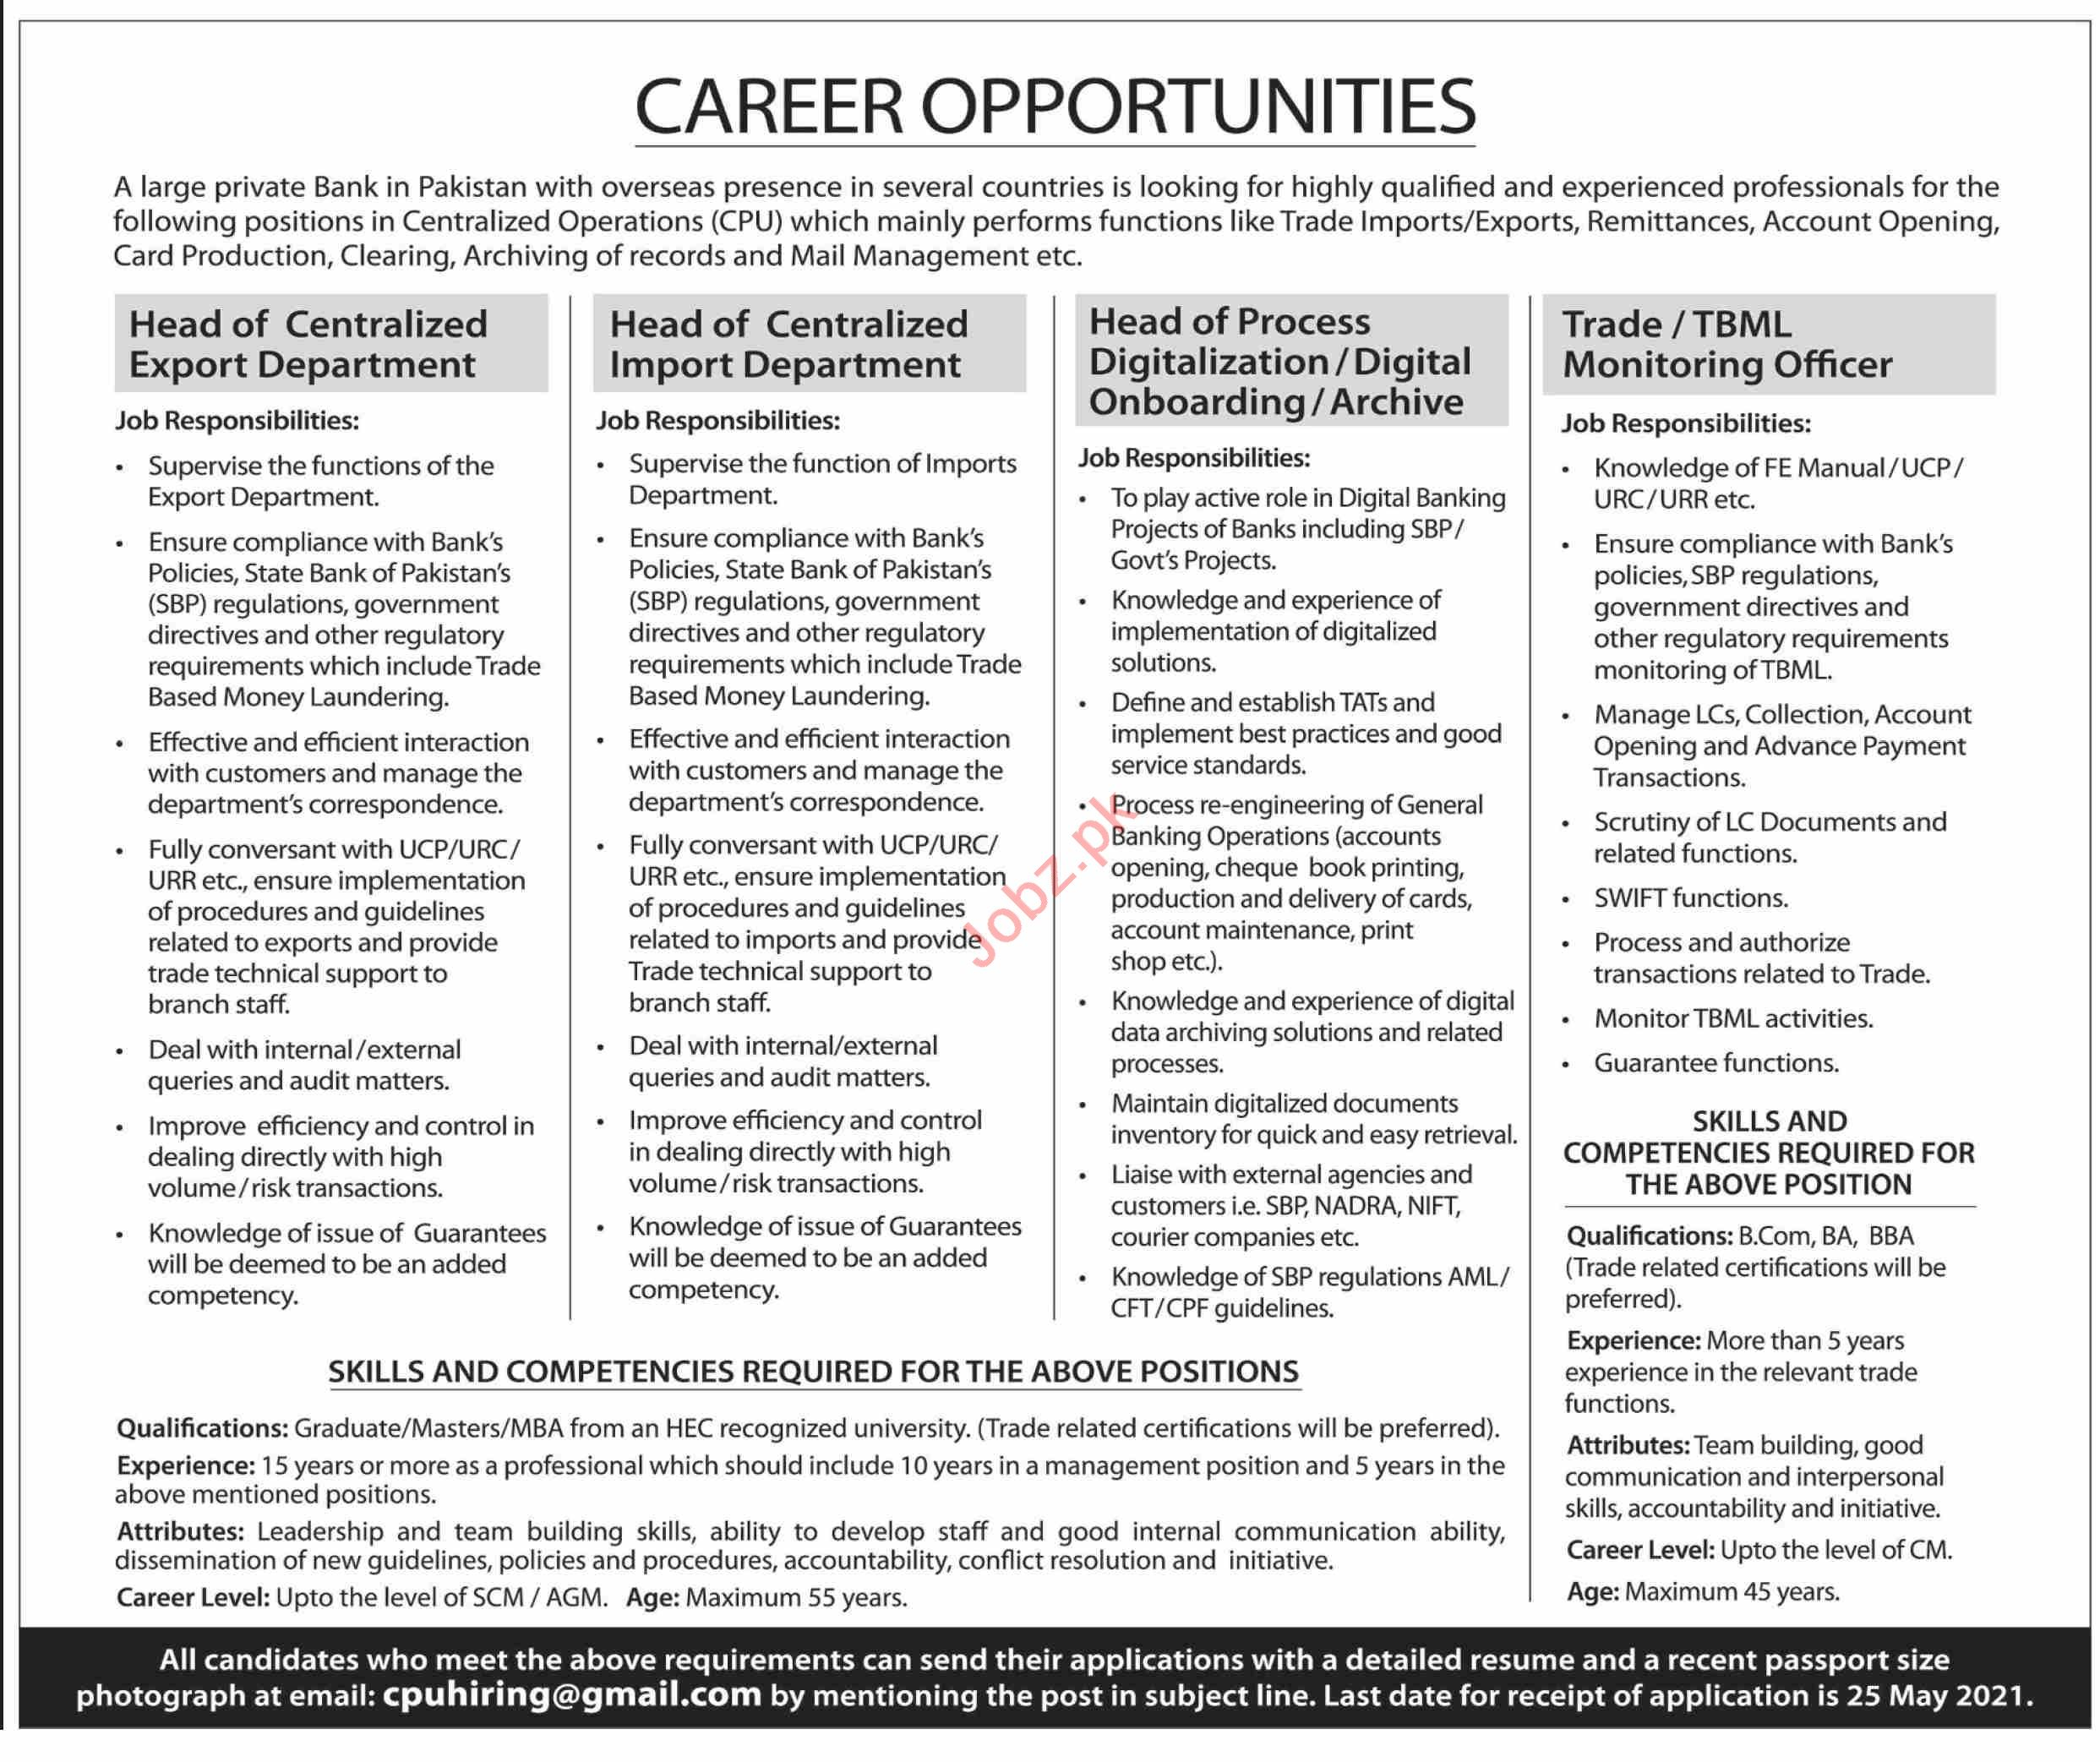 Head of Centralized Export & TBML Monitoring Officer Jobs